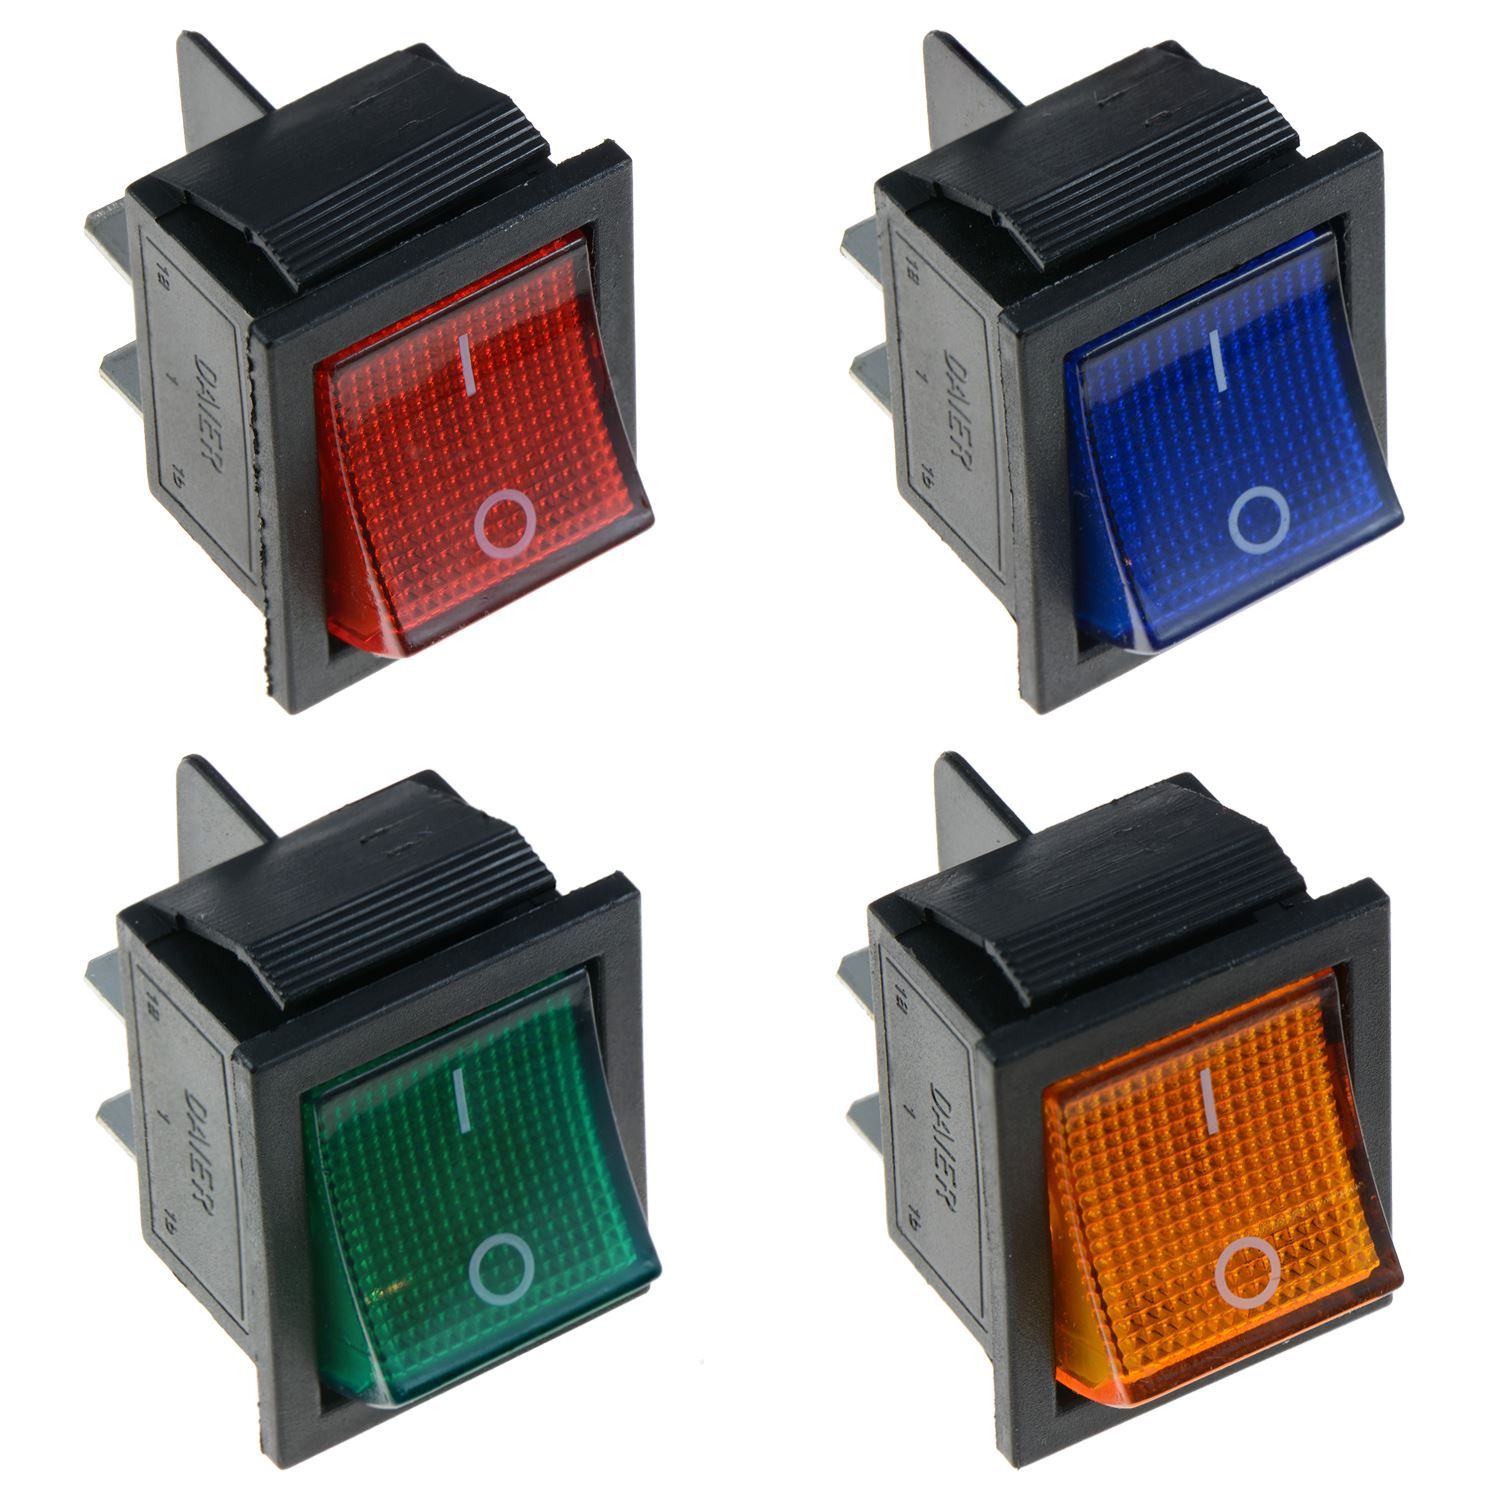 Illuminated Large On-Off Rocker Switch 12V DPST - Red Blue Green ...